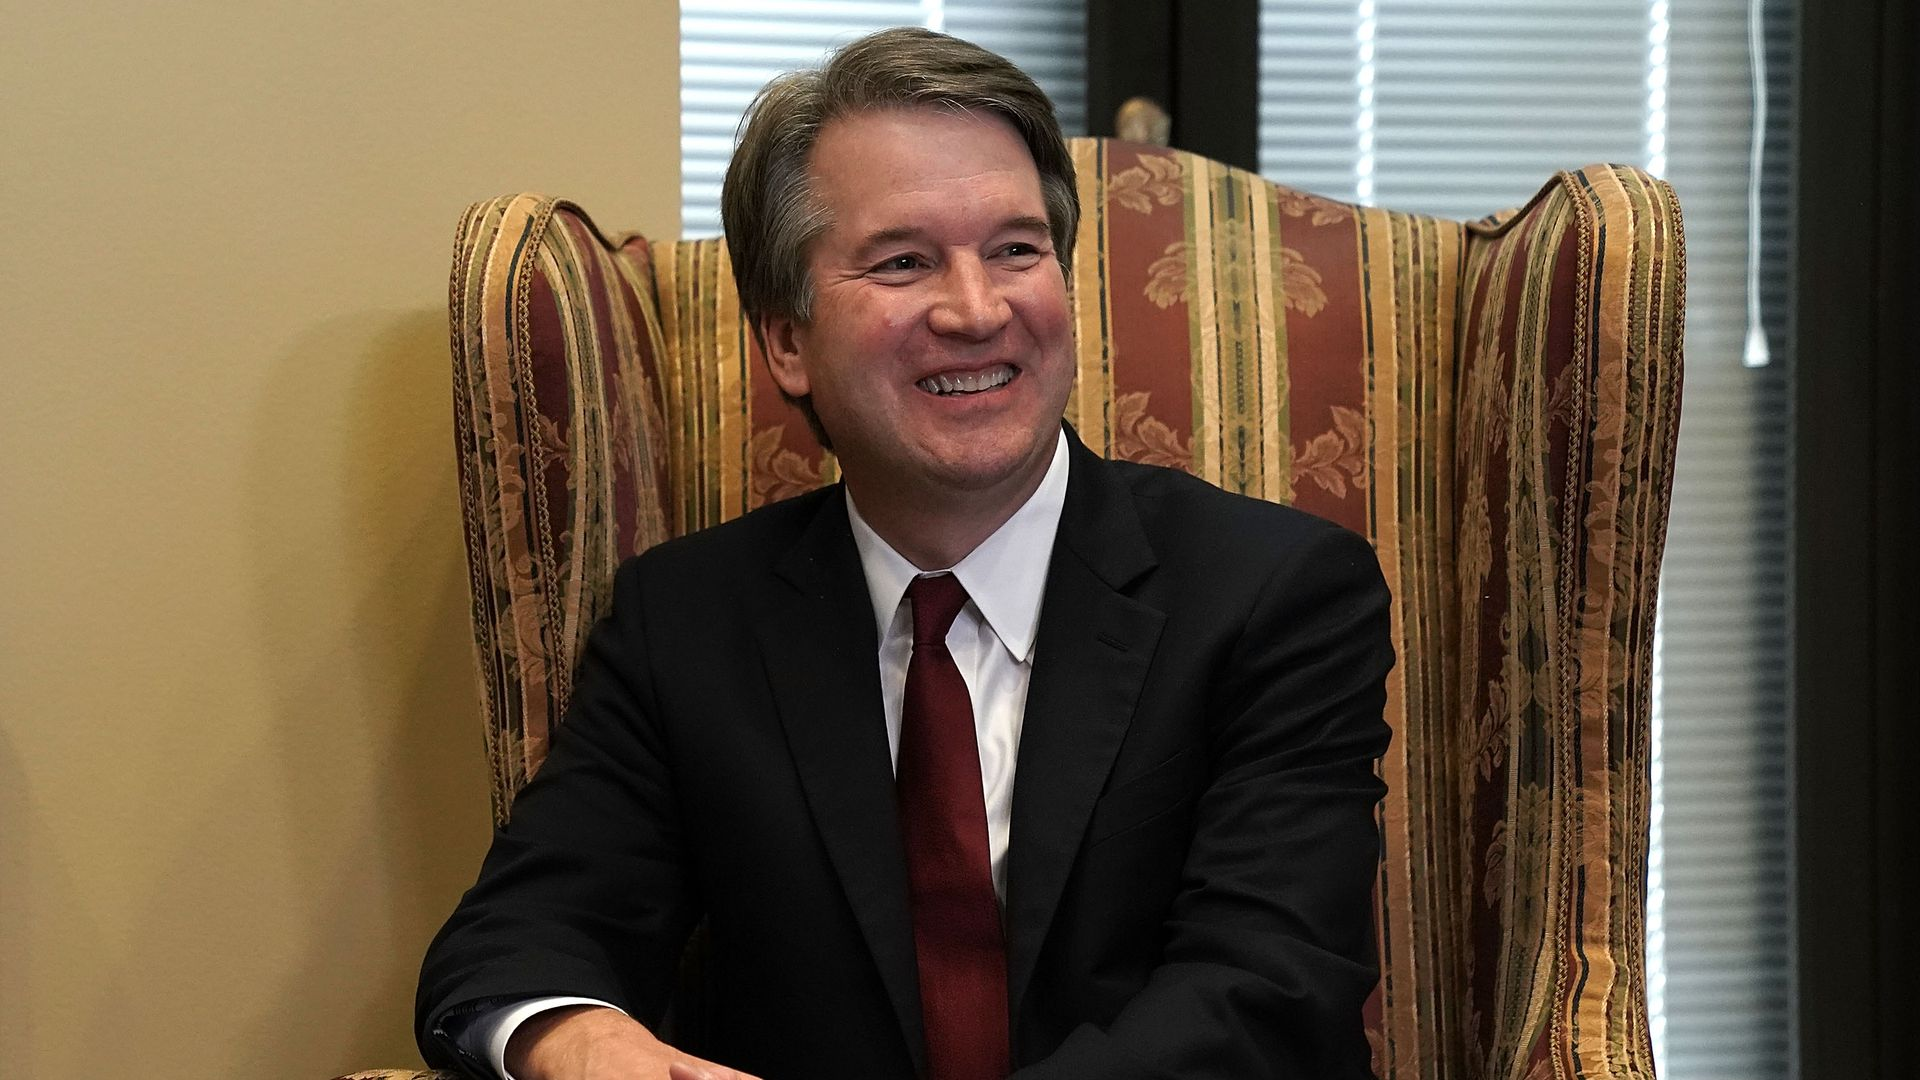 Brett Kavanaugh smiles wide while seated in an armchair